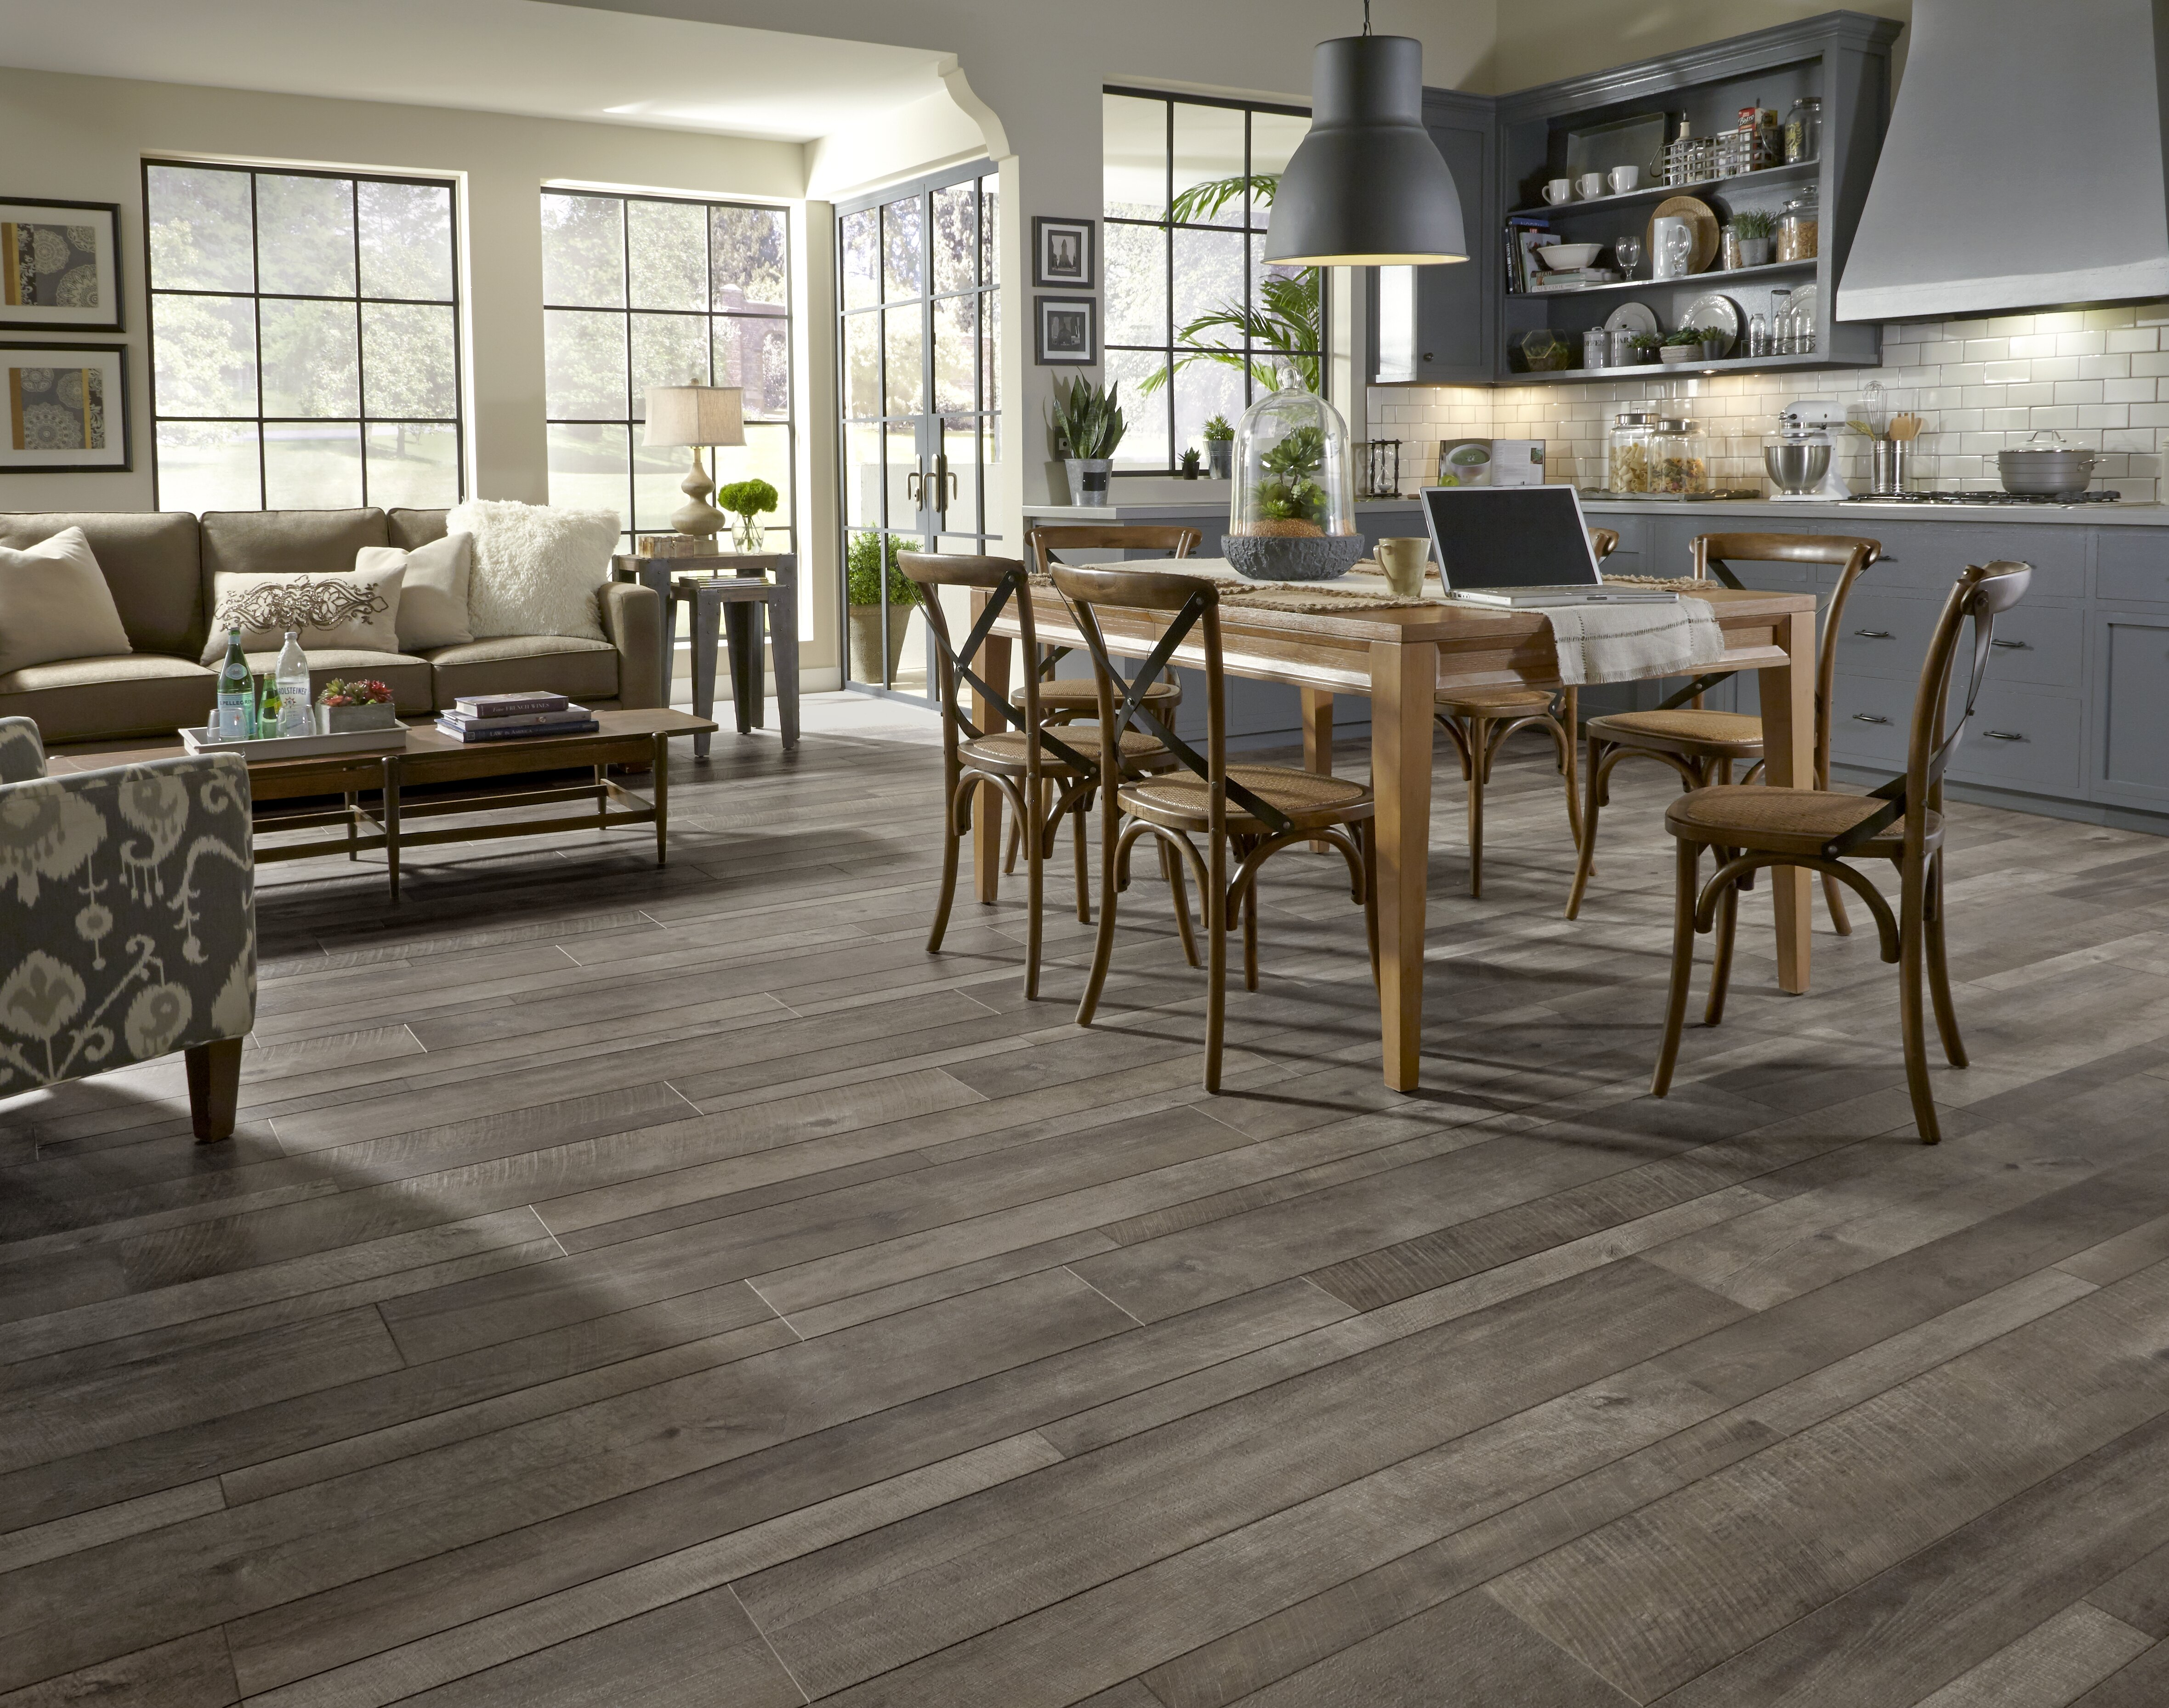 Oak laminate flooring in a gray kitchen with a wooden dining area and tan couches